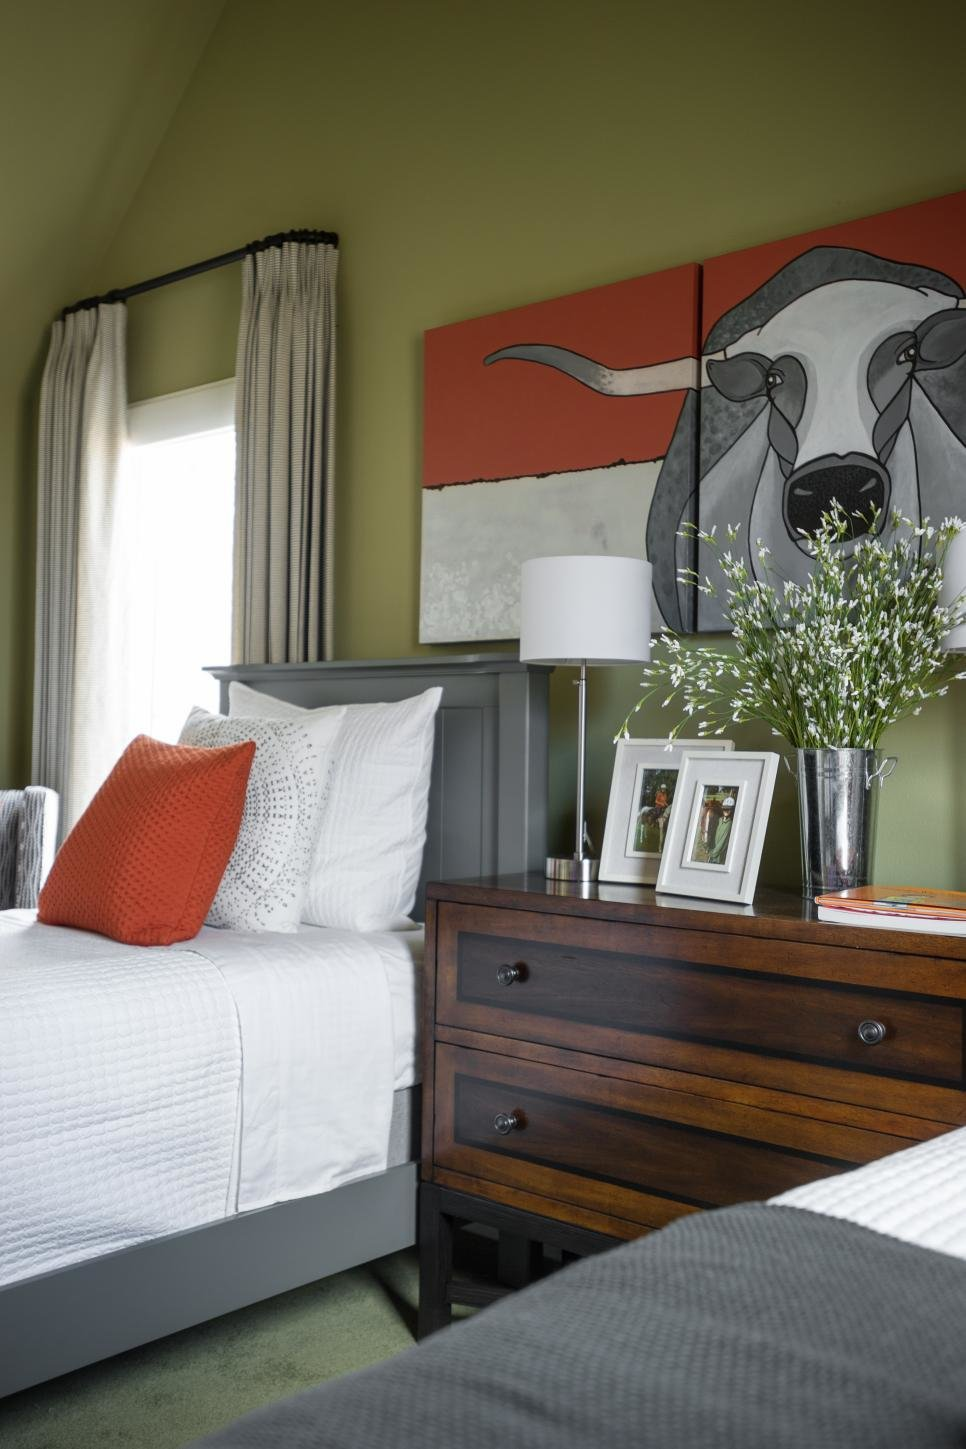 Best Kids Bedroom Pictures From Hgtv Smart Home 2015 Hgtv With Pictures